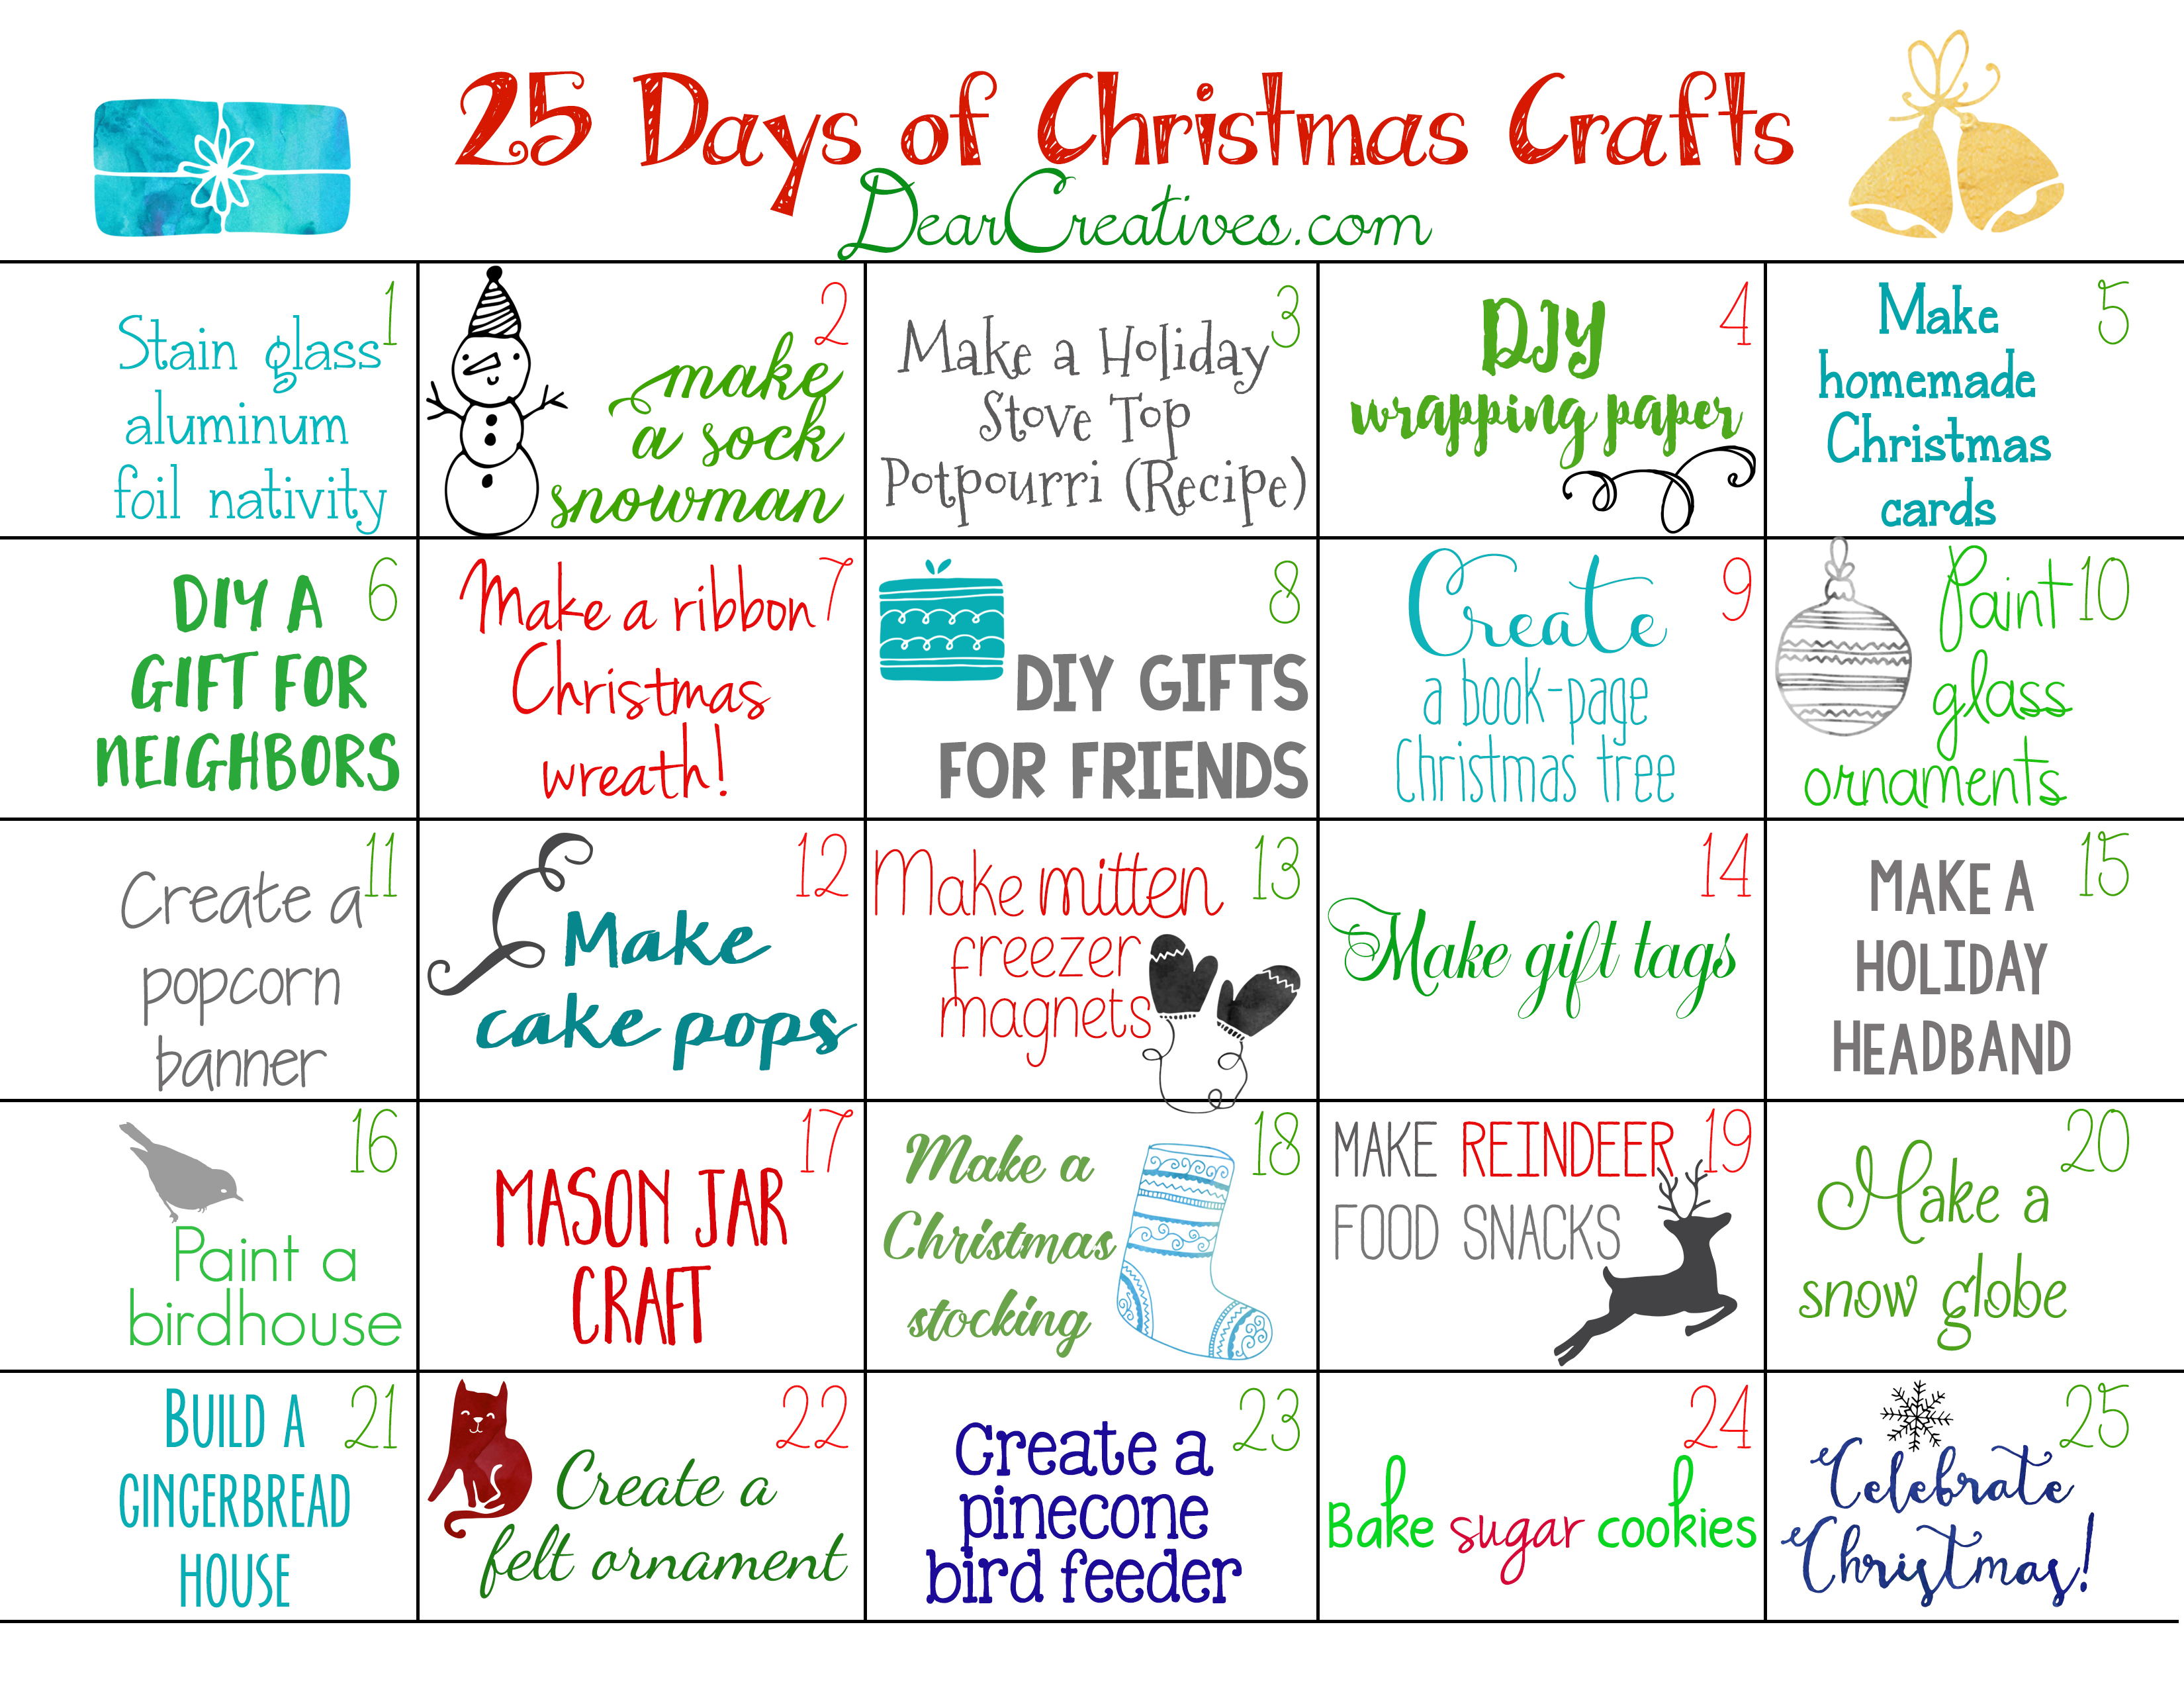 25 Days of Christmas Crafts Calendar, and links to Christmas holiday crafts, and ideas